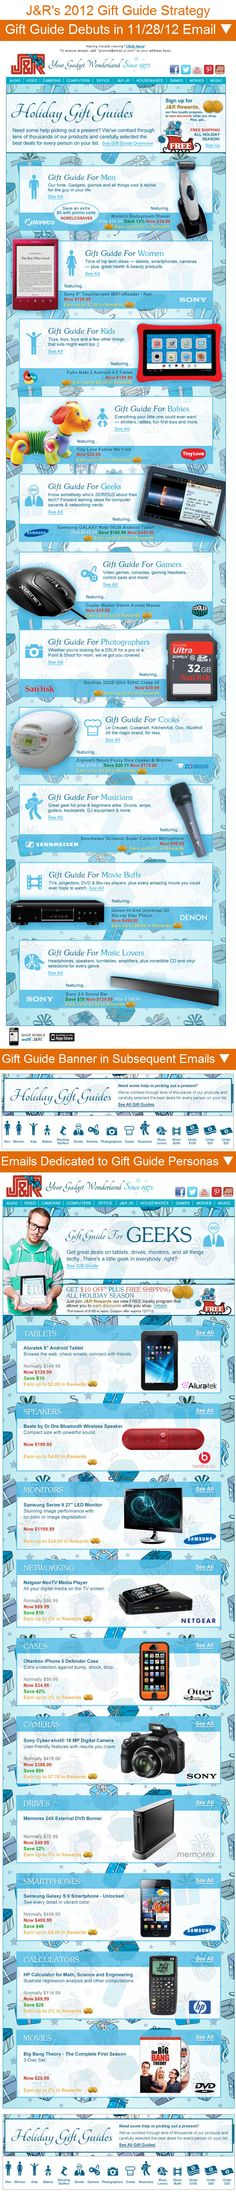 J & R >> sent 11/28/12 >> Introducing Our 2012 Holiday Gift Guides >> J & R's holiday emails featured their gift guides extensively. They debuted them in this email, promoted them in a banner at the bottom of subsequent emails, and dedicated several emails entirely to some of the gift guide personas. —Anna Meier, Design Consultant, ExactTarget